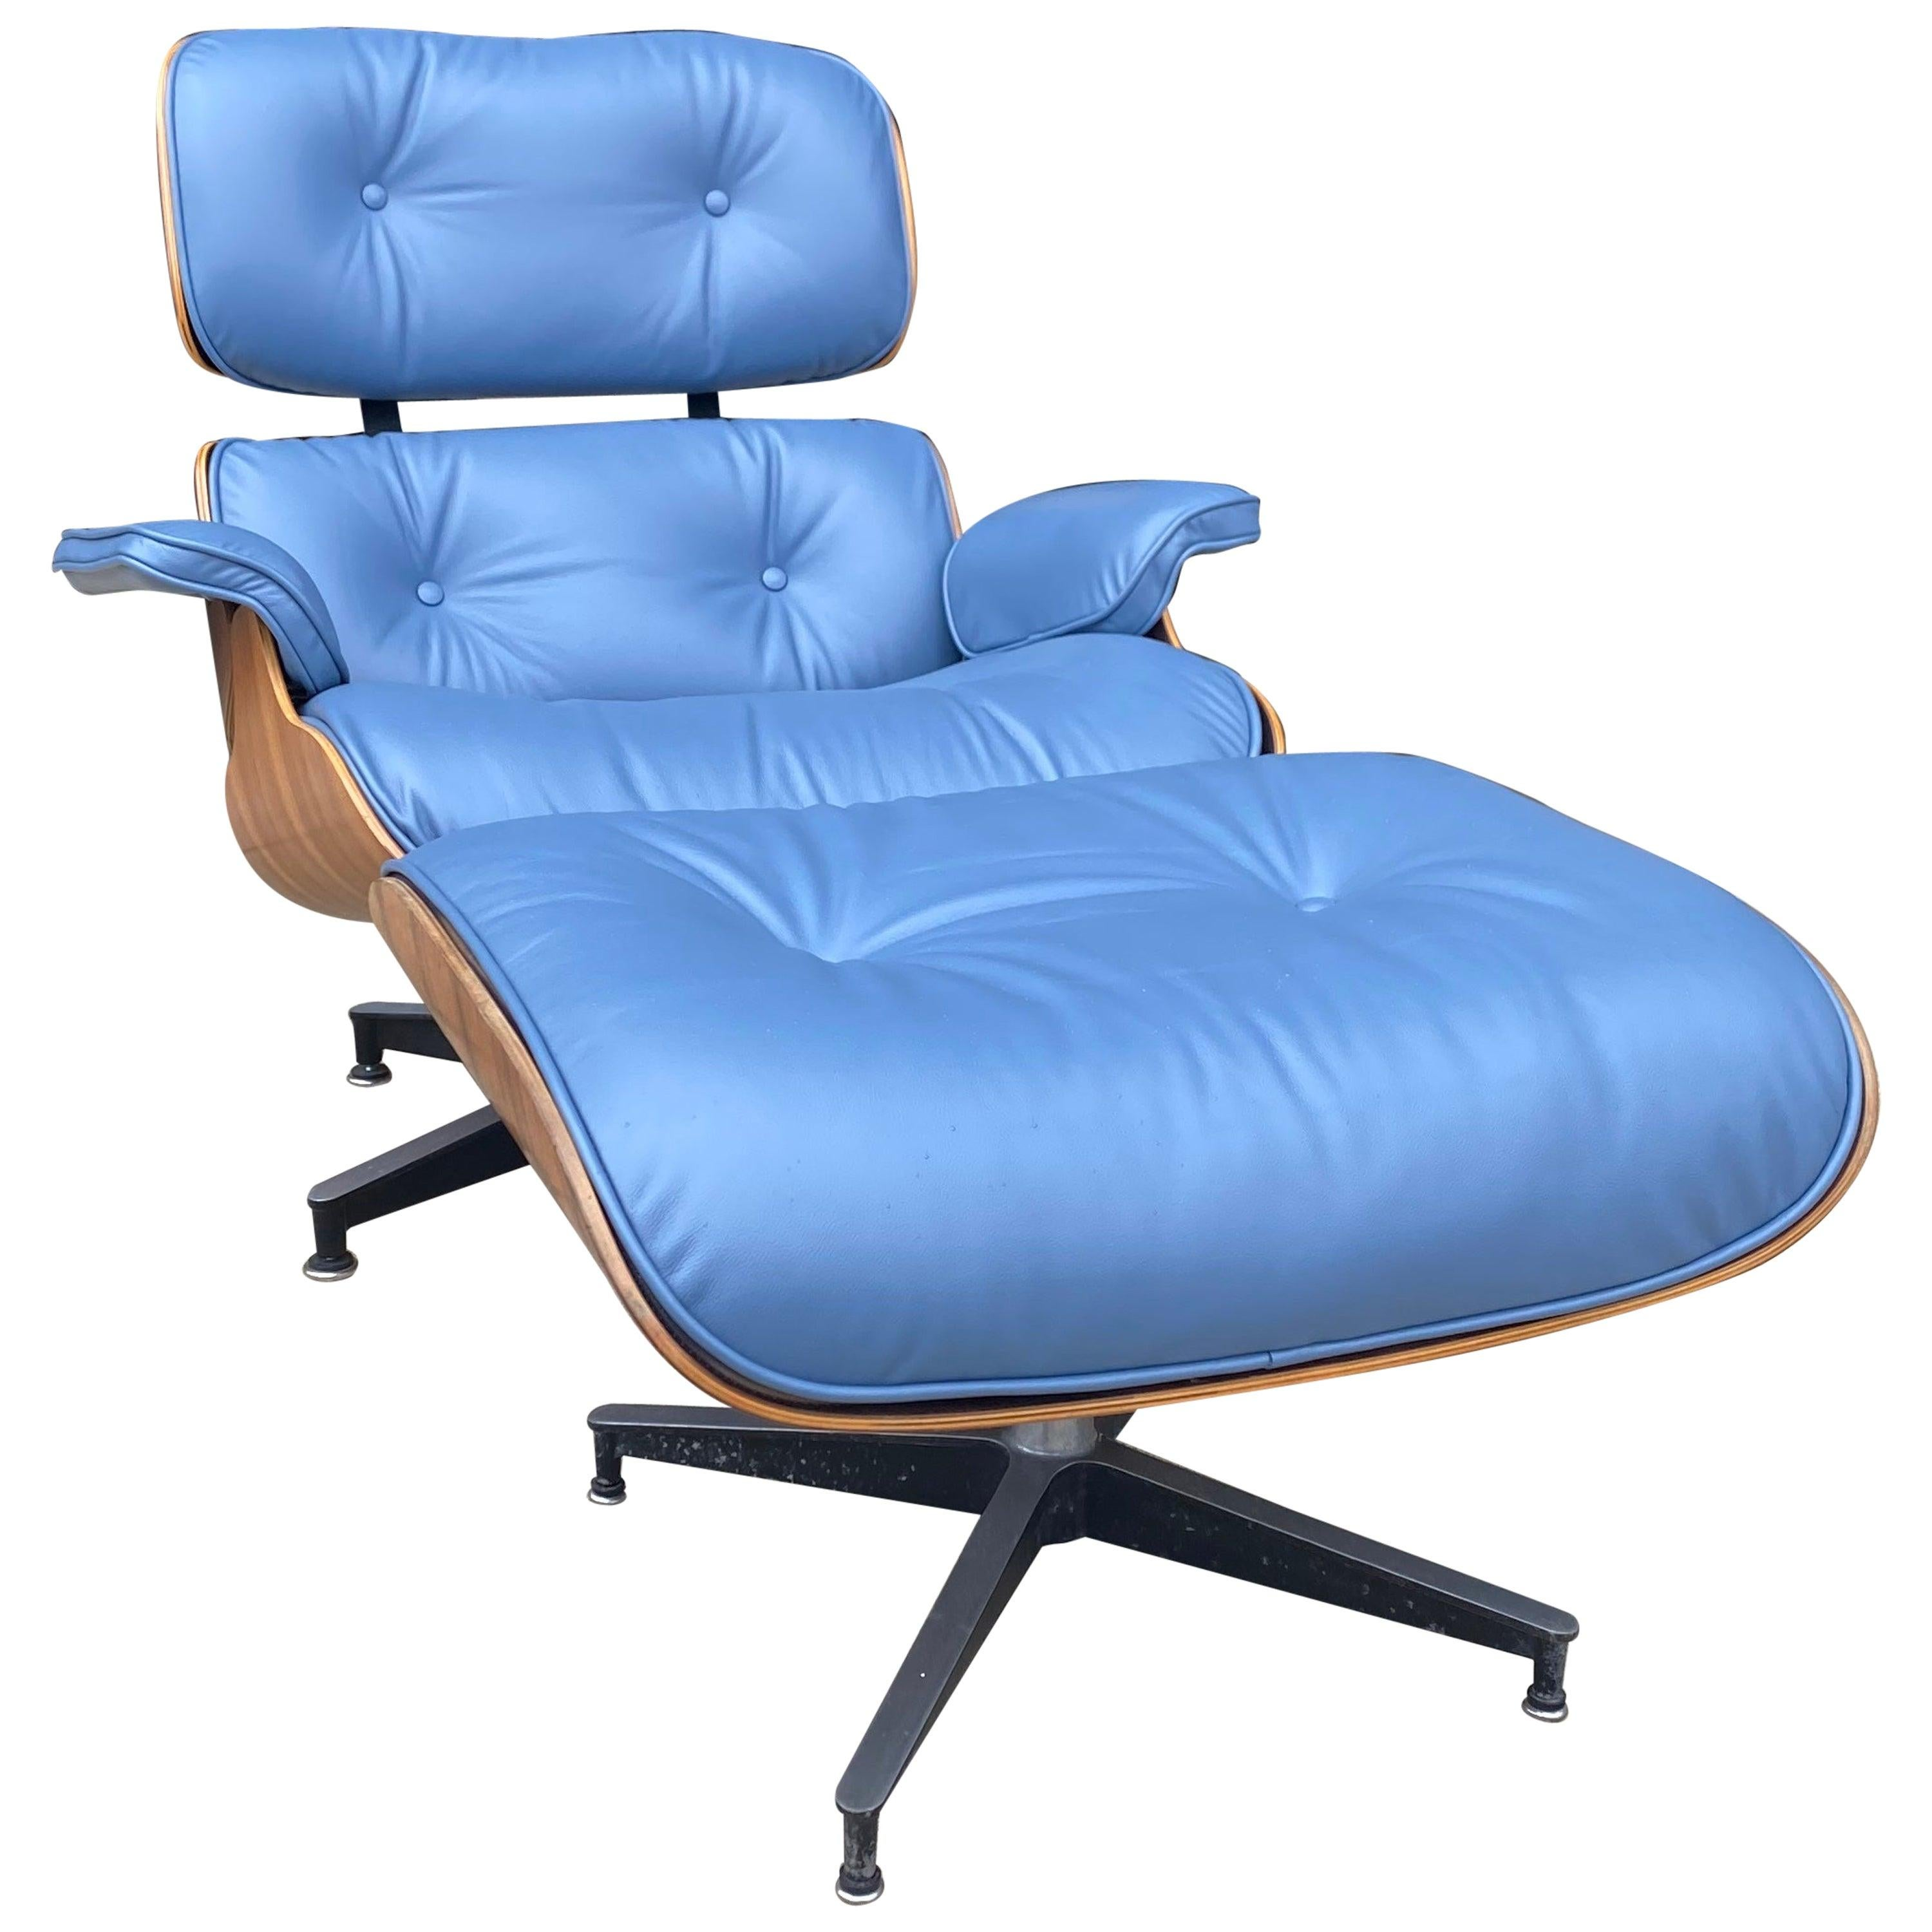 Rare Custom Herman Miller Eames Lounge Chair & Ottoman with Perfect Blue Leather